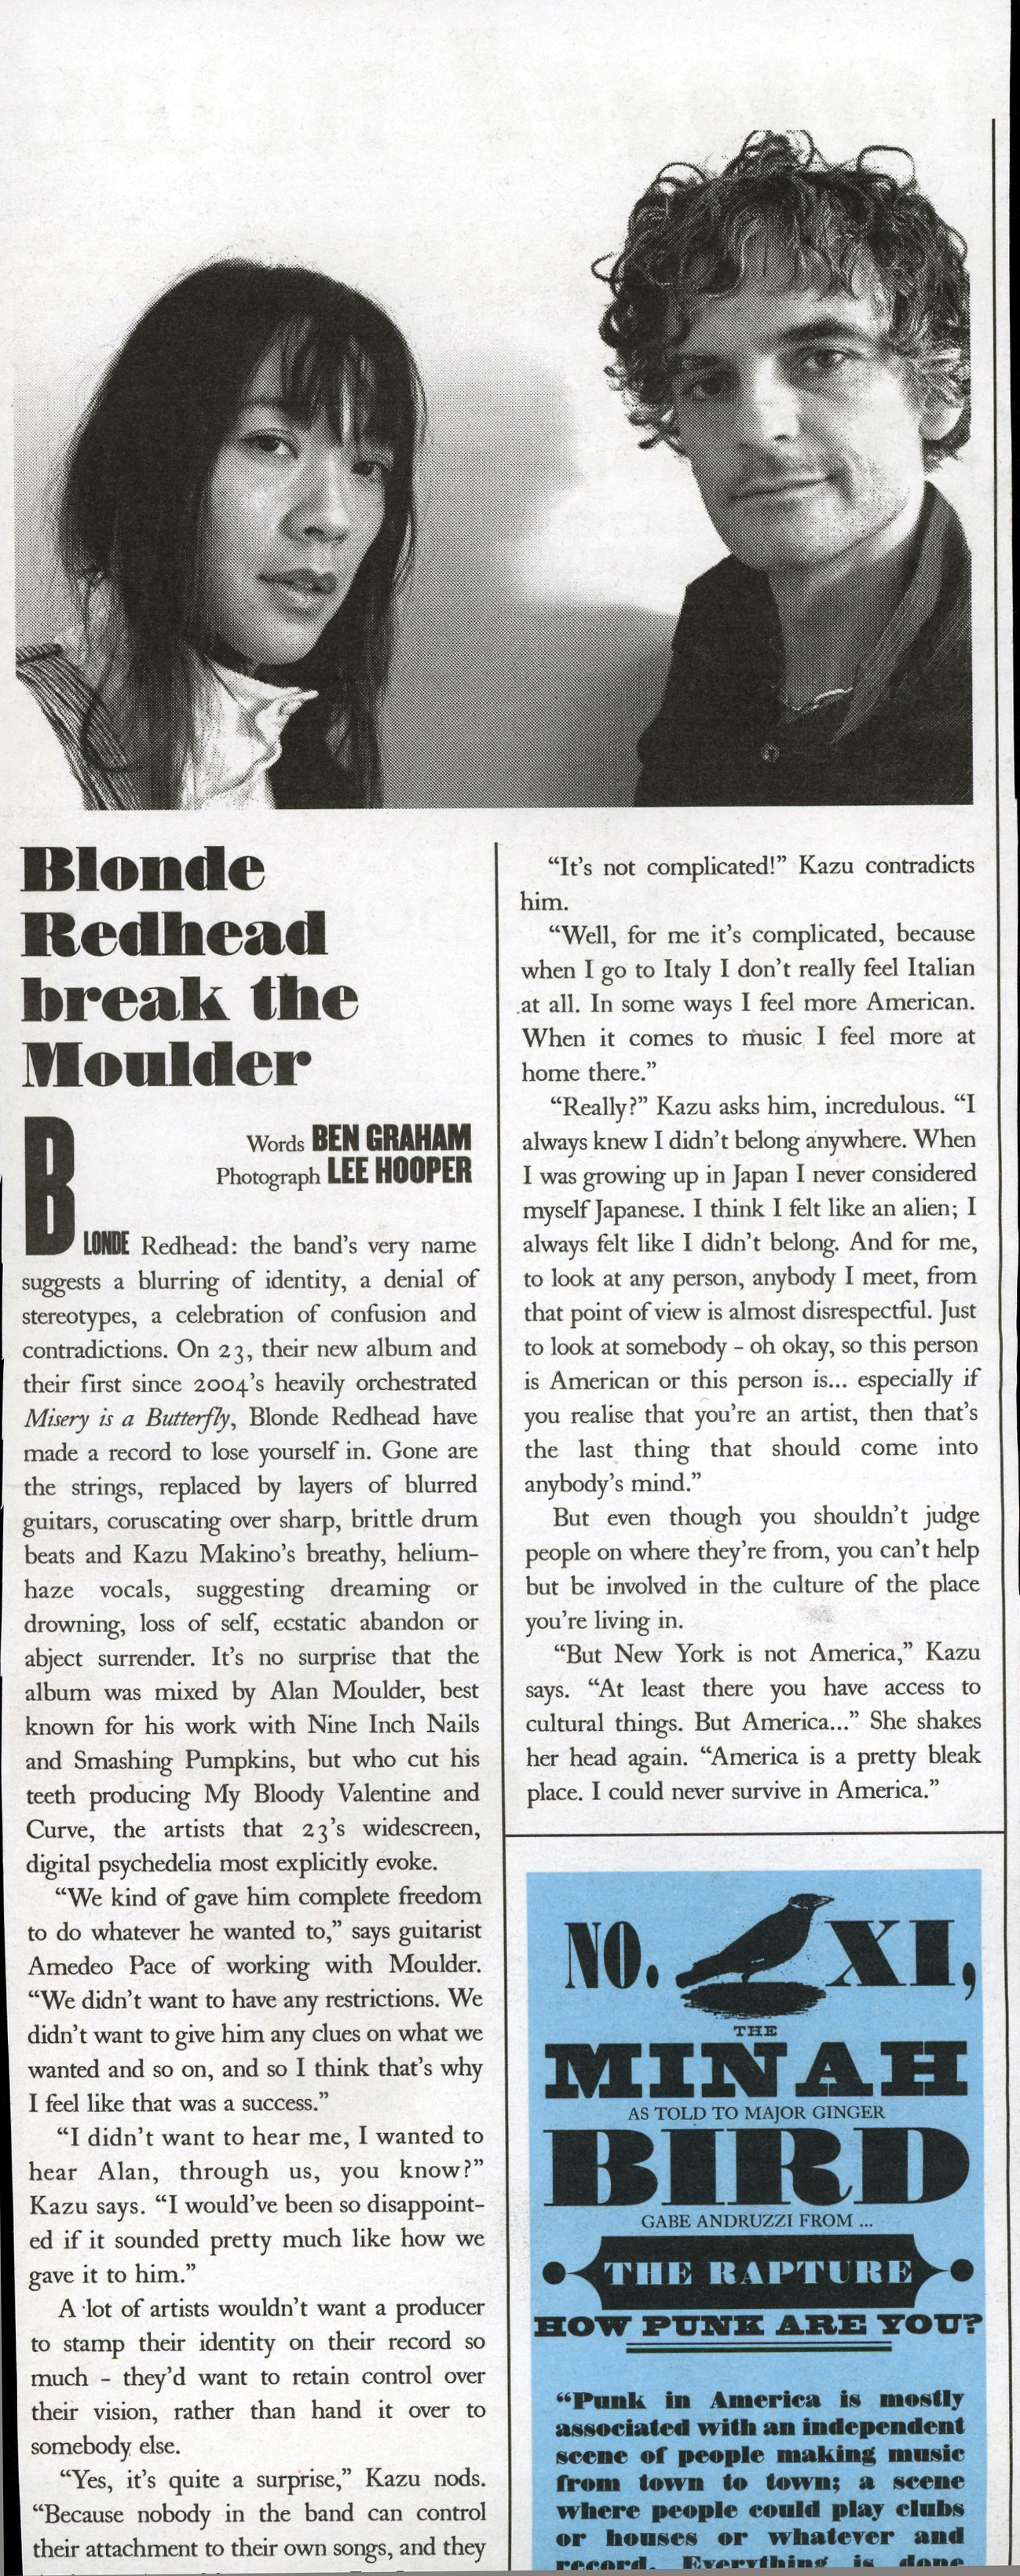 Blonde Redhead, The Stool Pigeon Newspaper, 2007